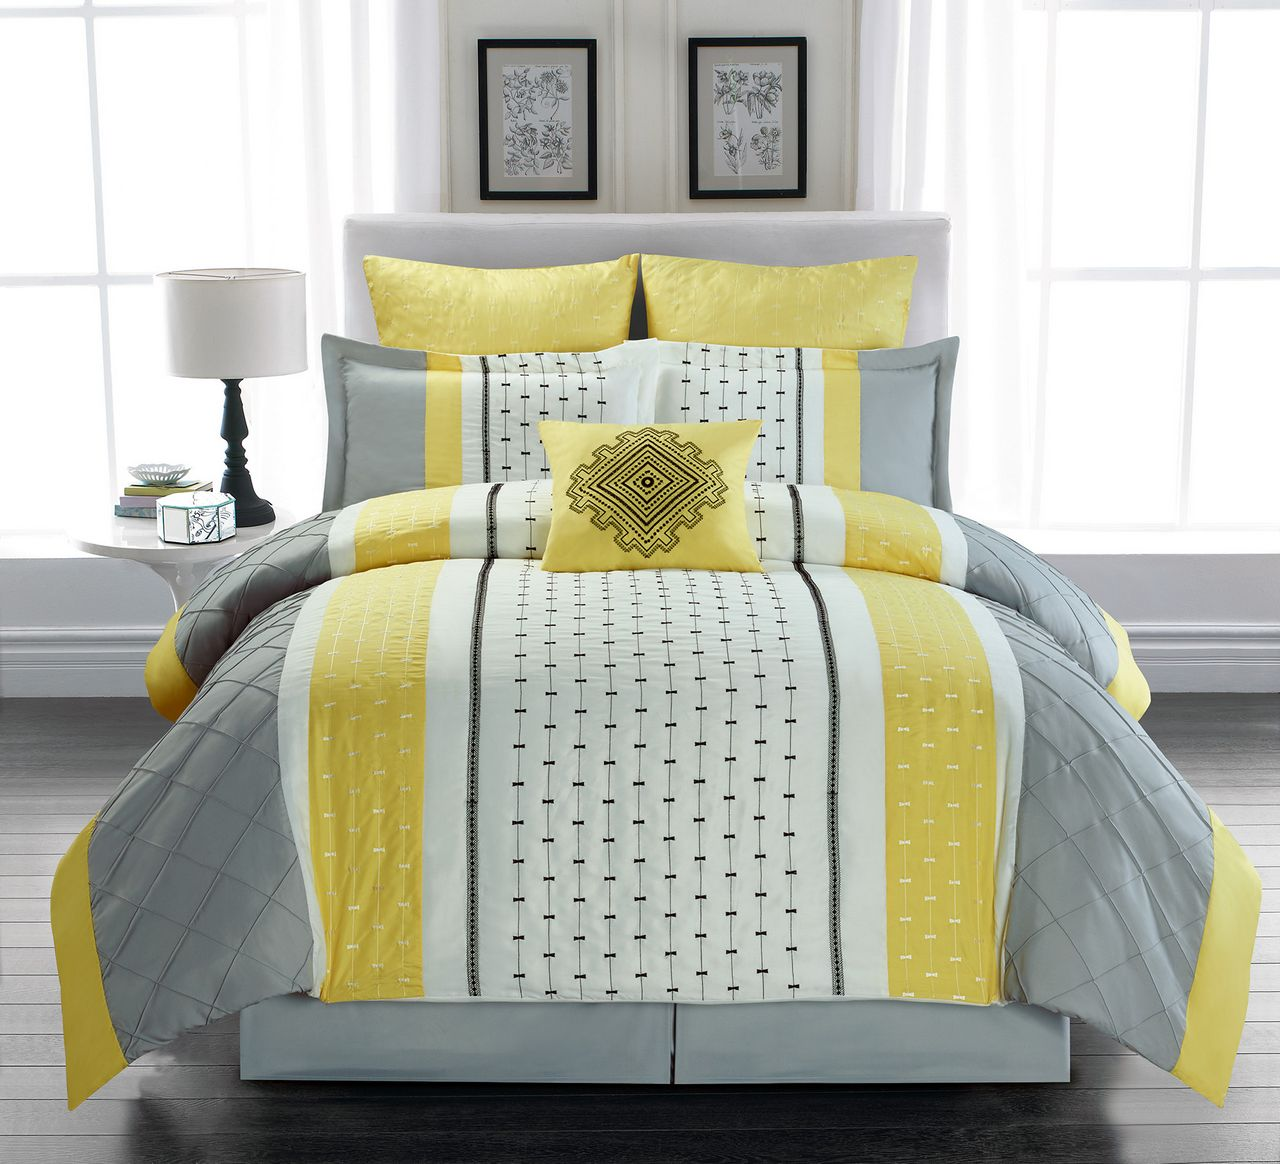 7 Piece Buckley Yellow/Gray/Ivory Comforter Set